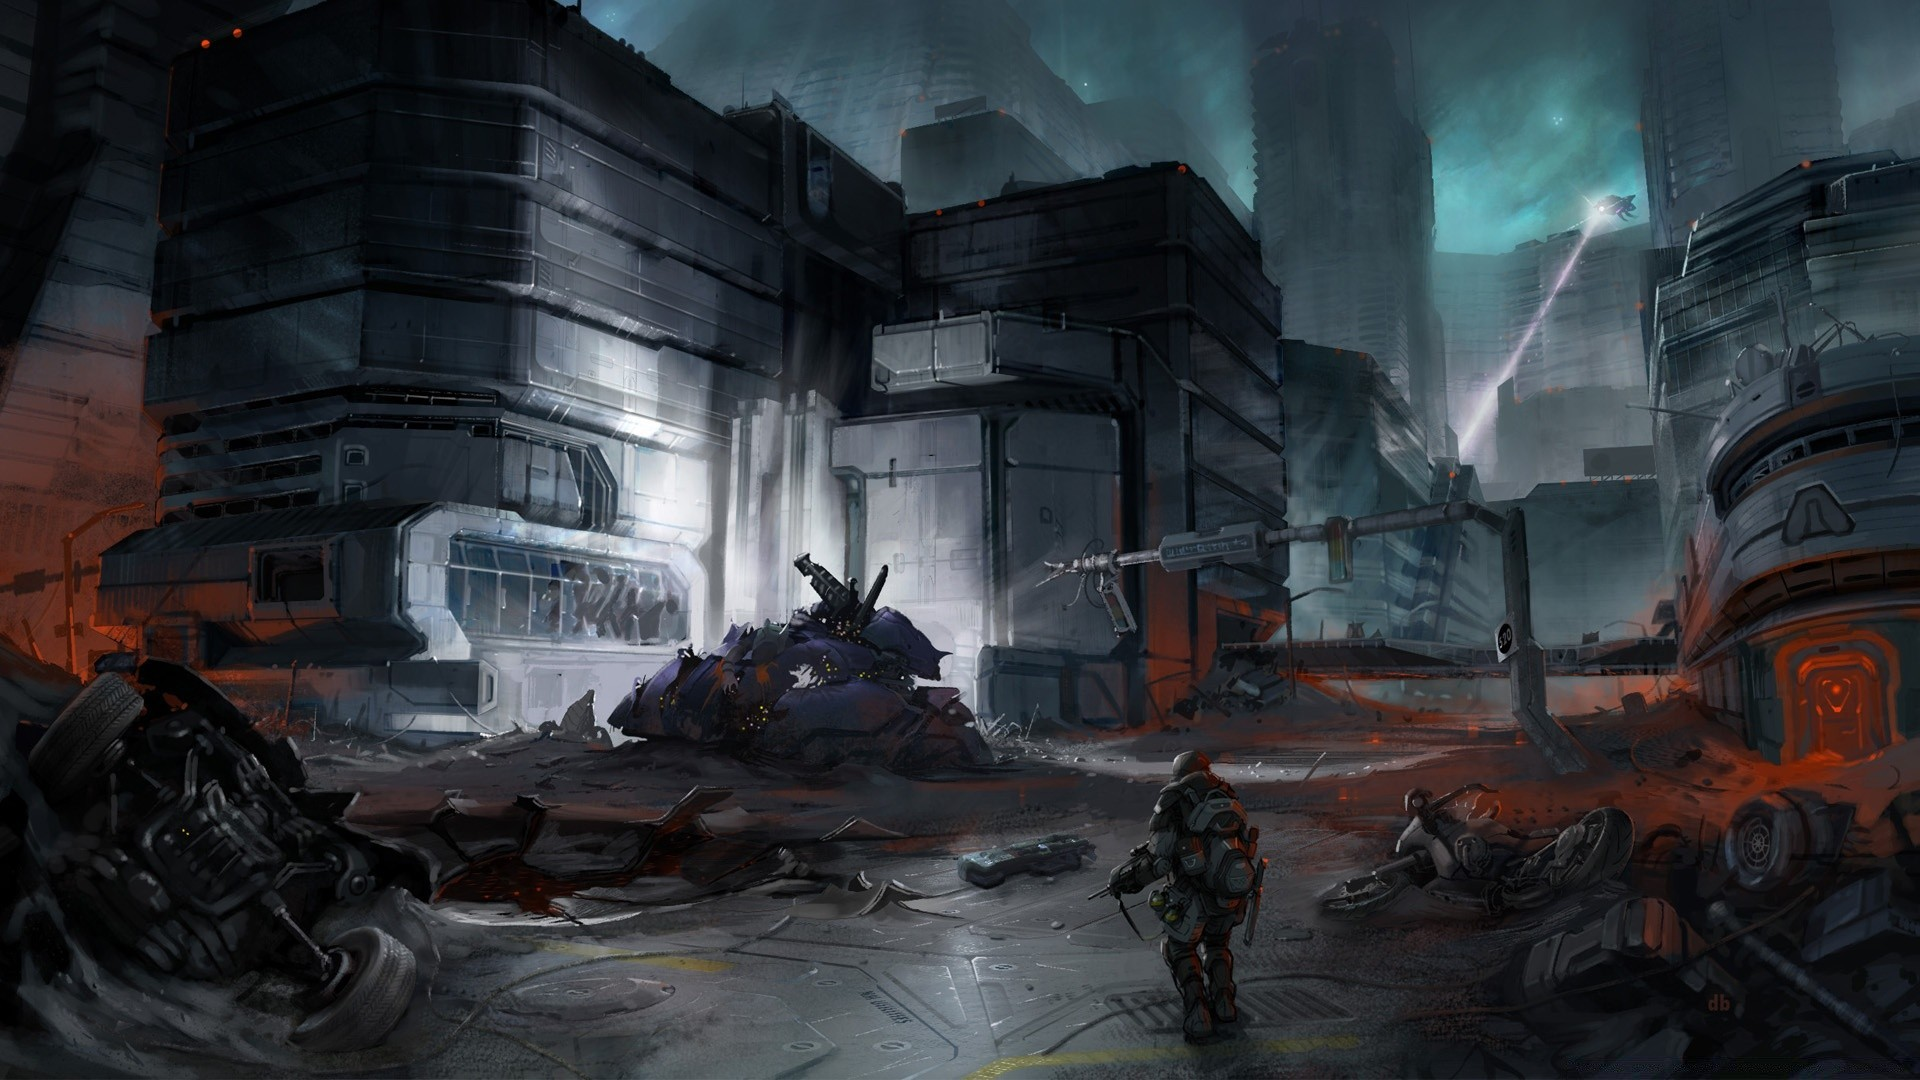 halo 3 odst video game. iphone wallpapers for free.